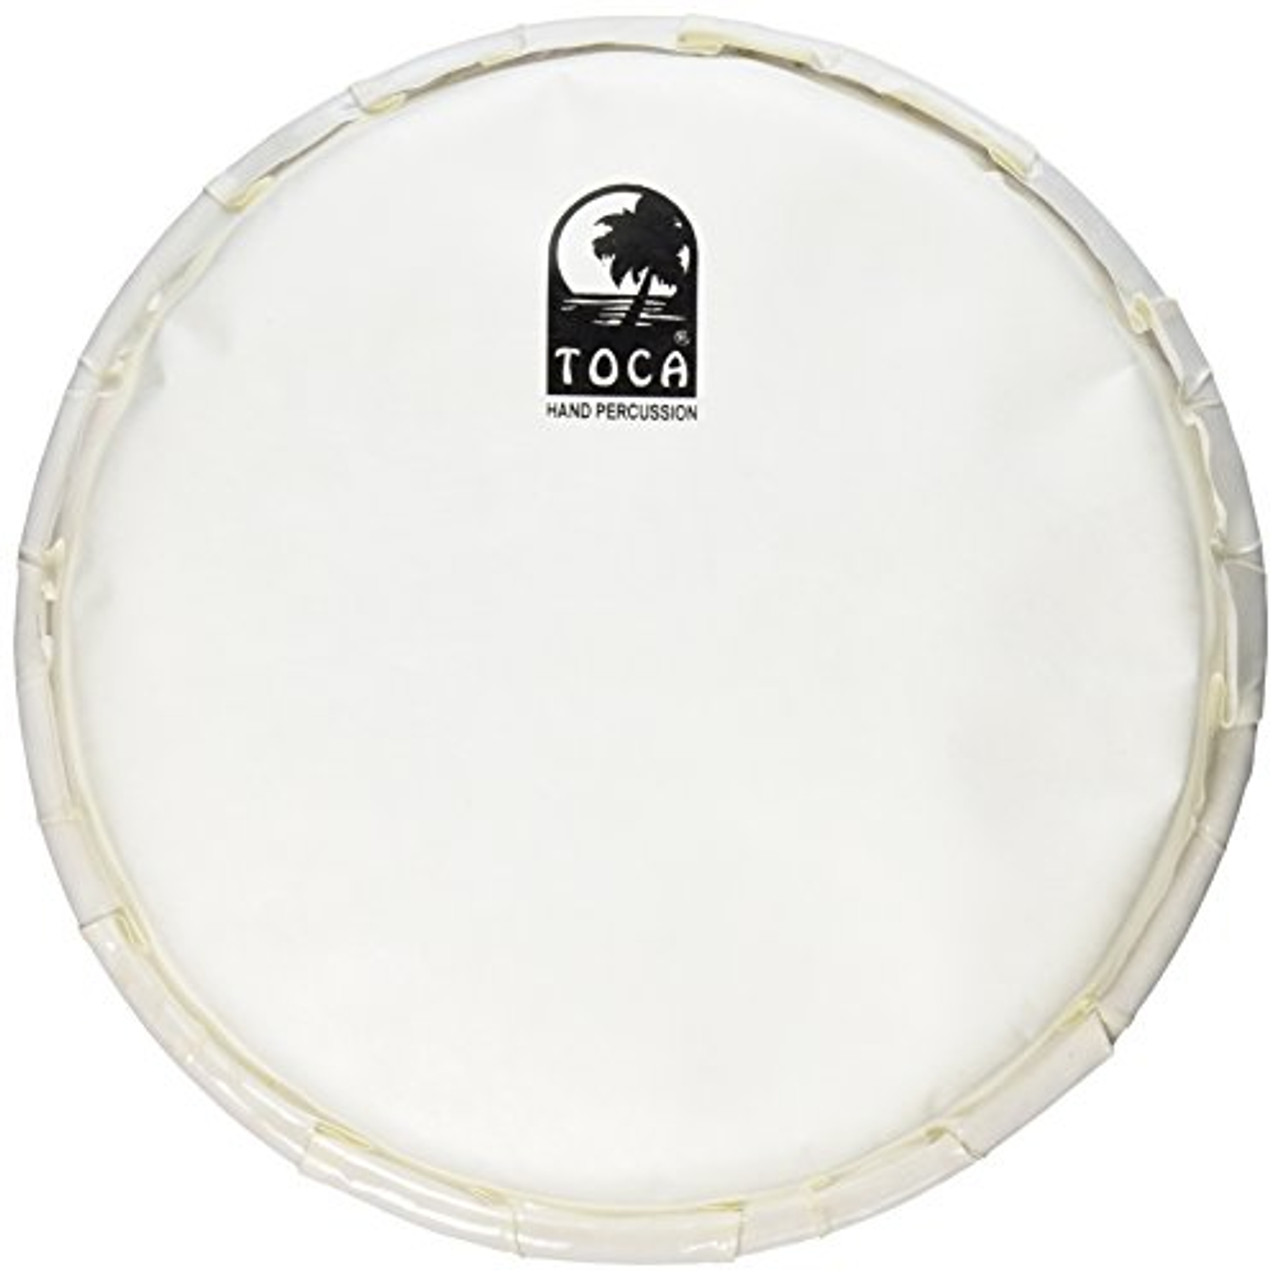 Toca a TP-DJHSM10 10-Inch Head for Mechanically Tuned Freestyle II Djembe